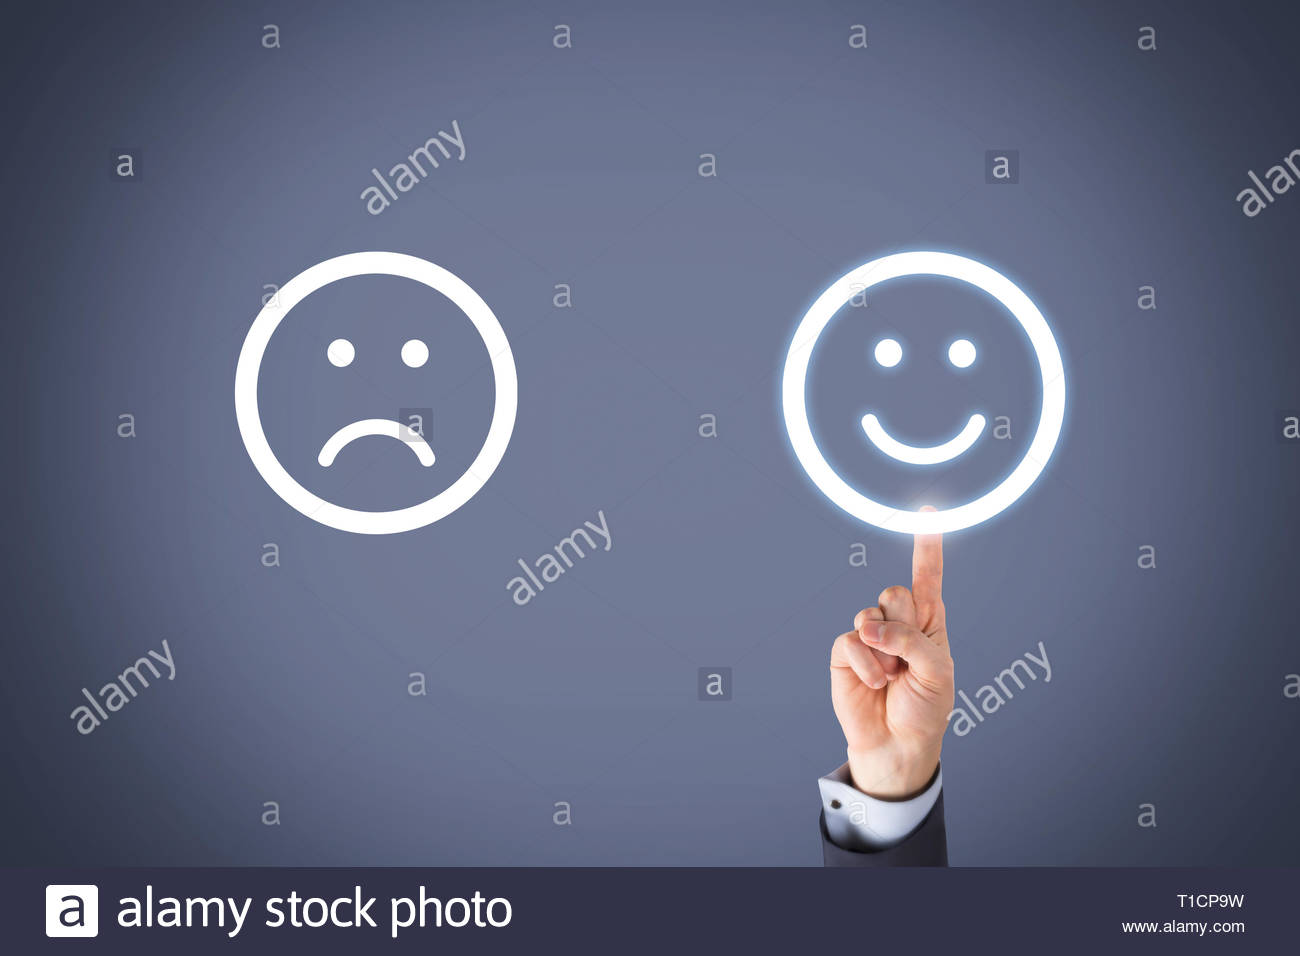 Unhappy and Happy Smileys on Visual Screen - Stock Image